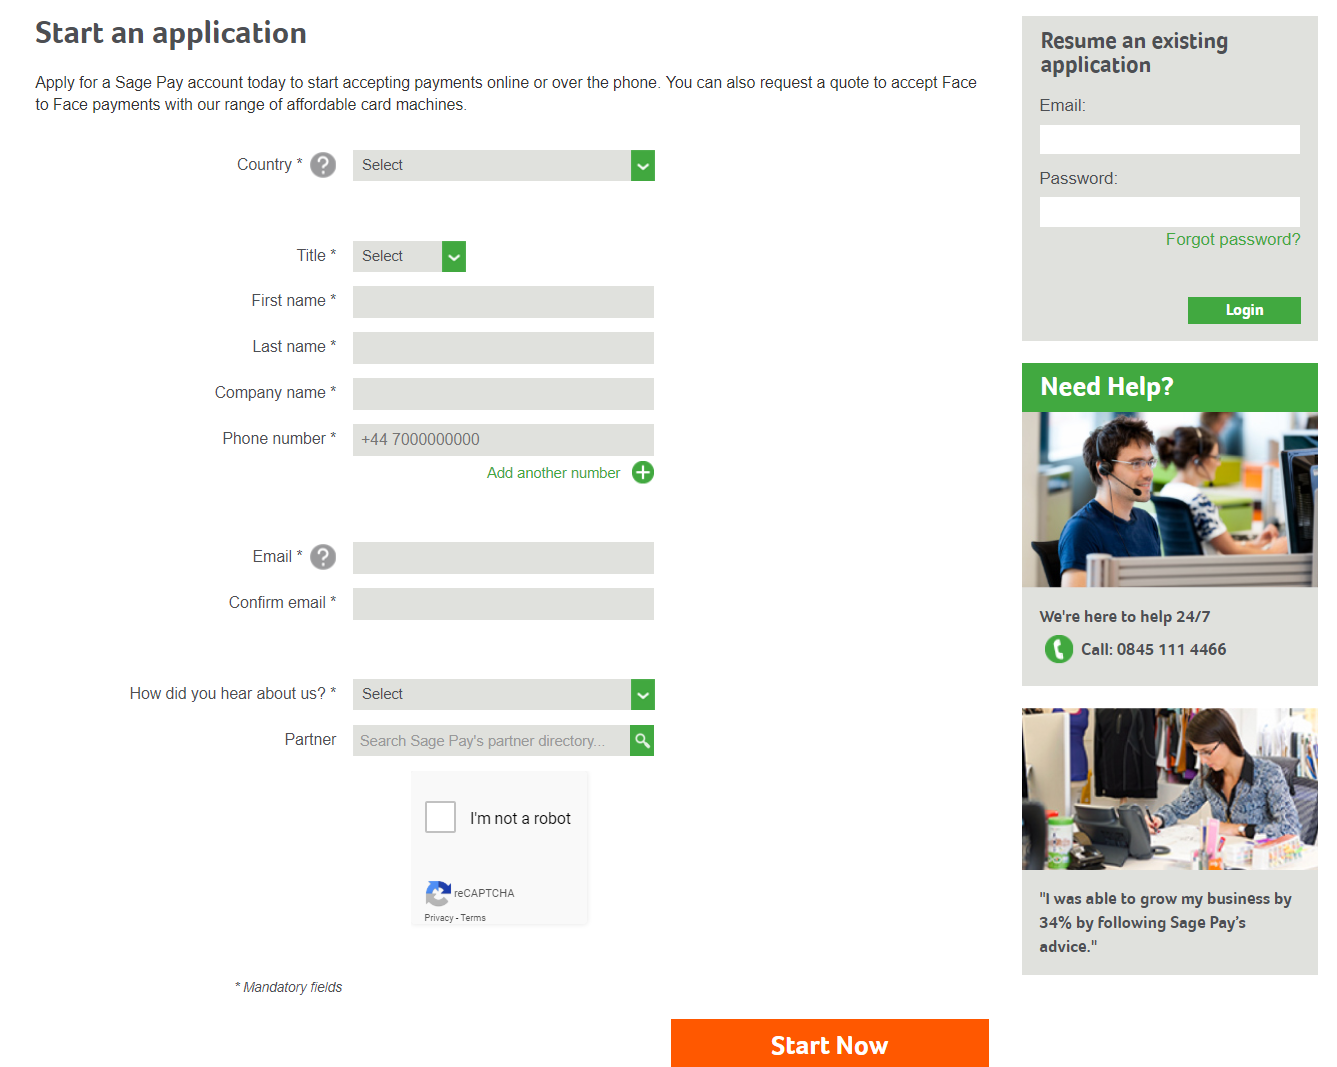 Sign Up Sage Pay Account